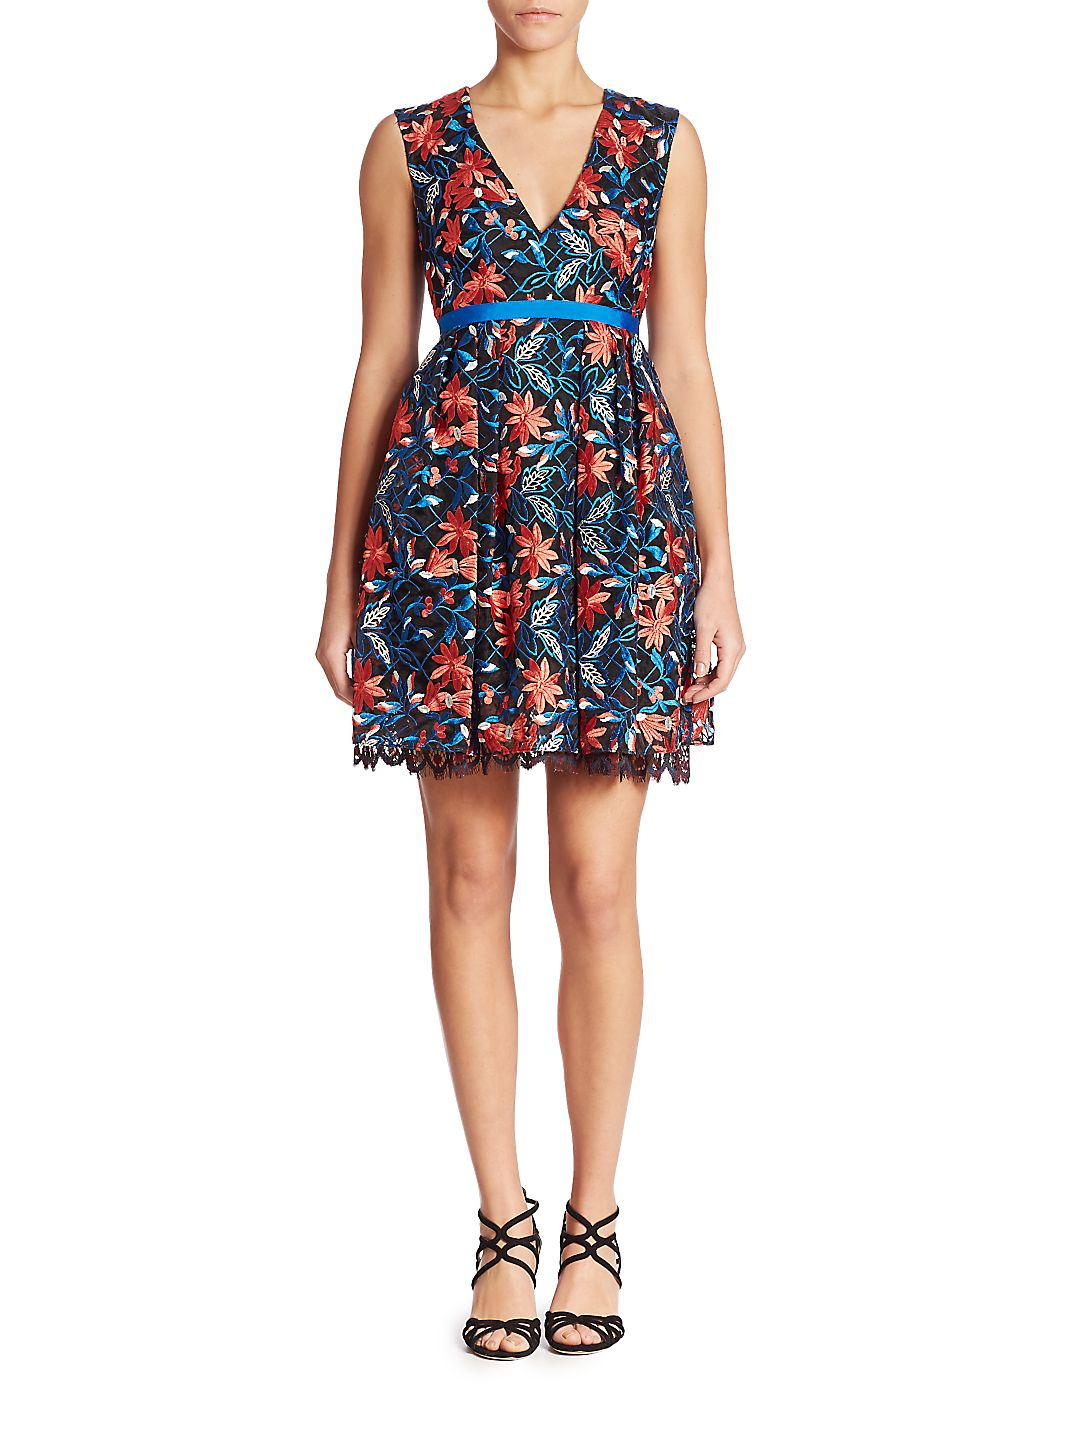 Lyst - Ml Monique Lhuillier Sleeveless Floral Lace Dress in Blue